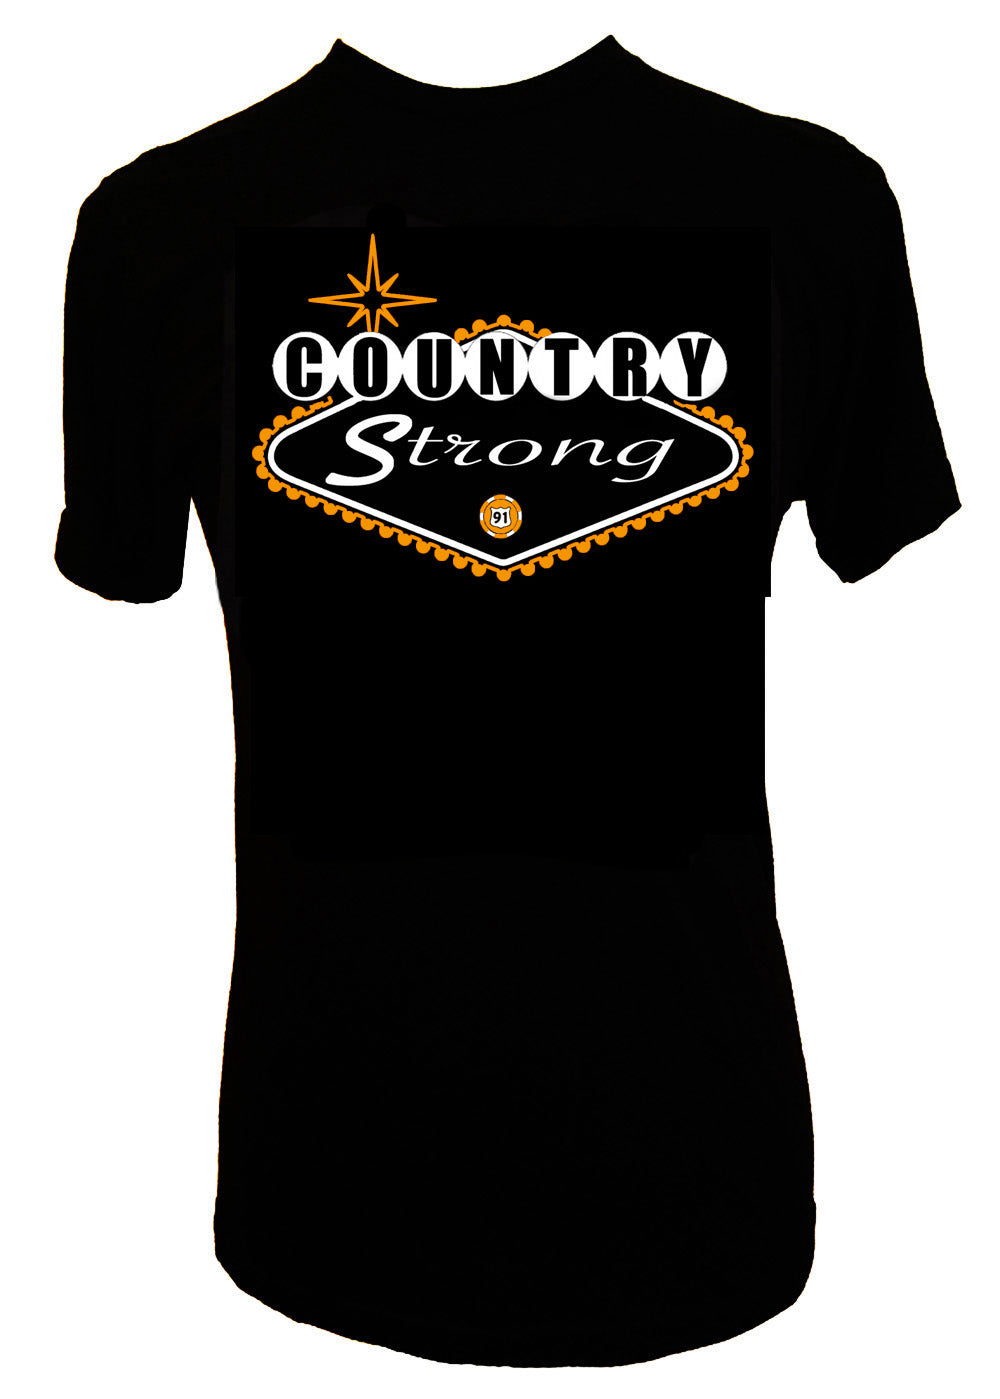 COUNTRY STRONG LAS VEGAS ROUTE 91 T SHIRT + free gift - Trailsclothing.com